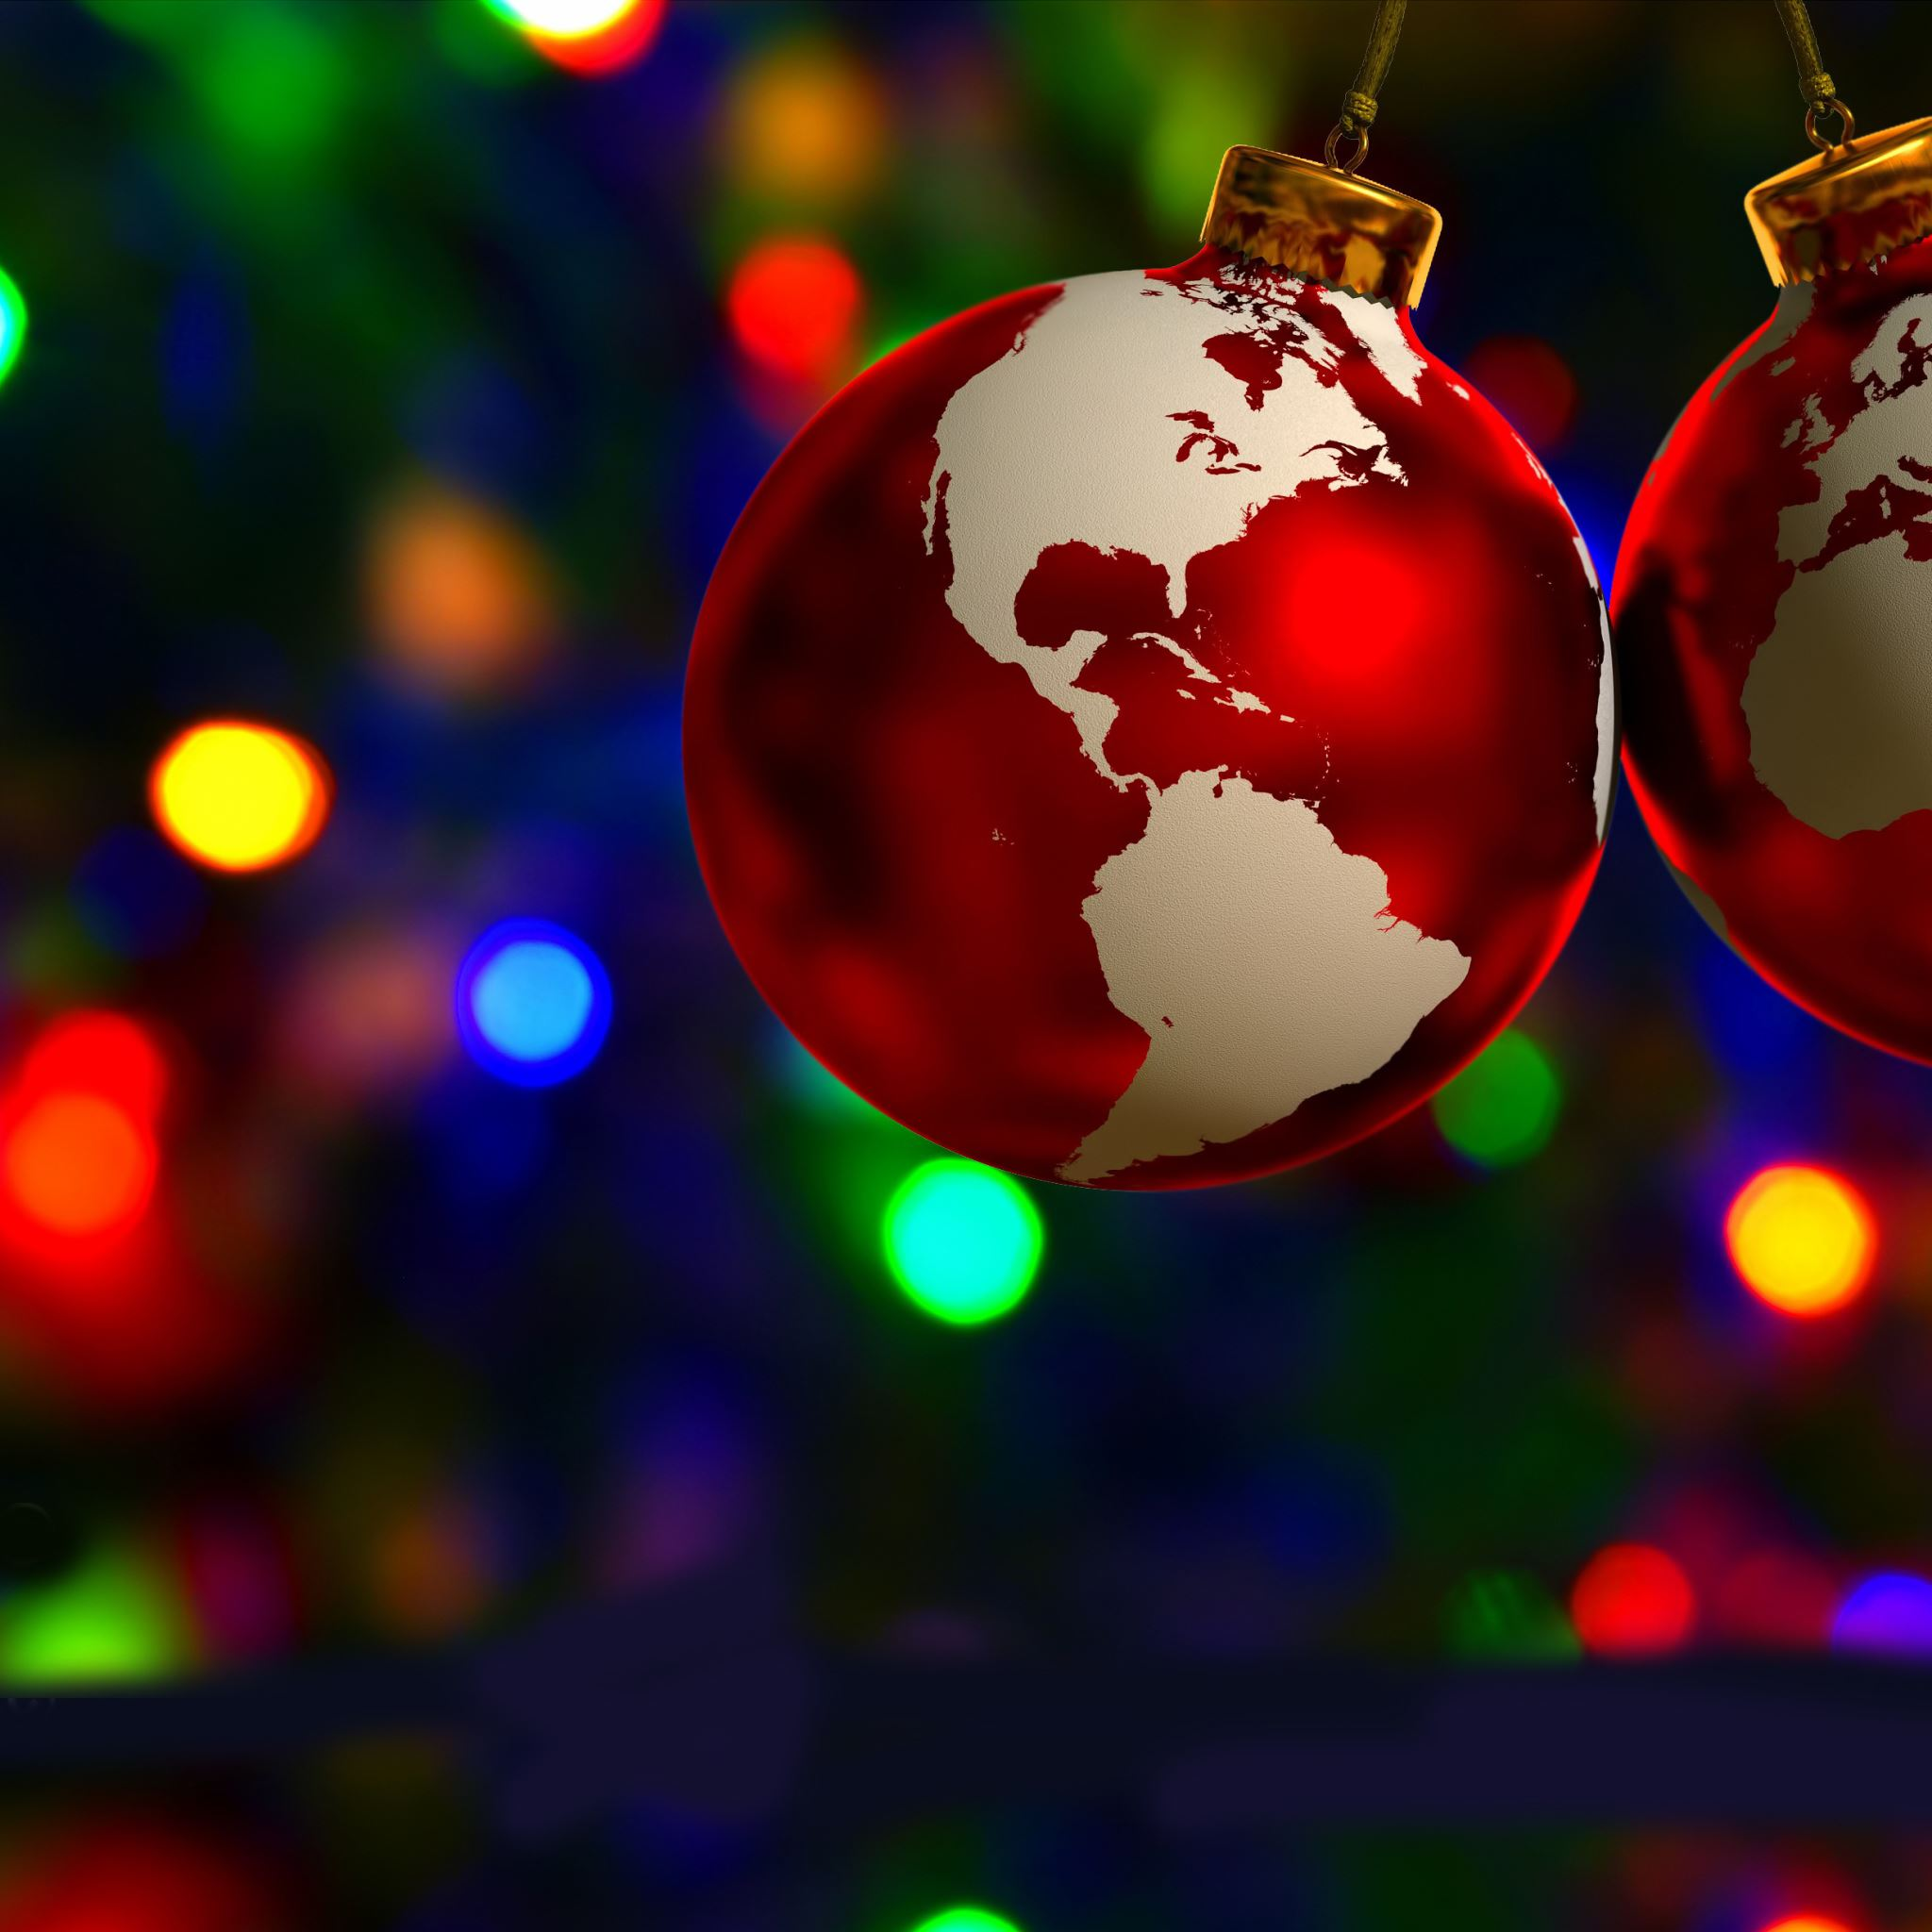 Best Holiday Event Ipad Wallpapers Free Hd